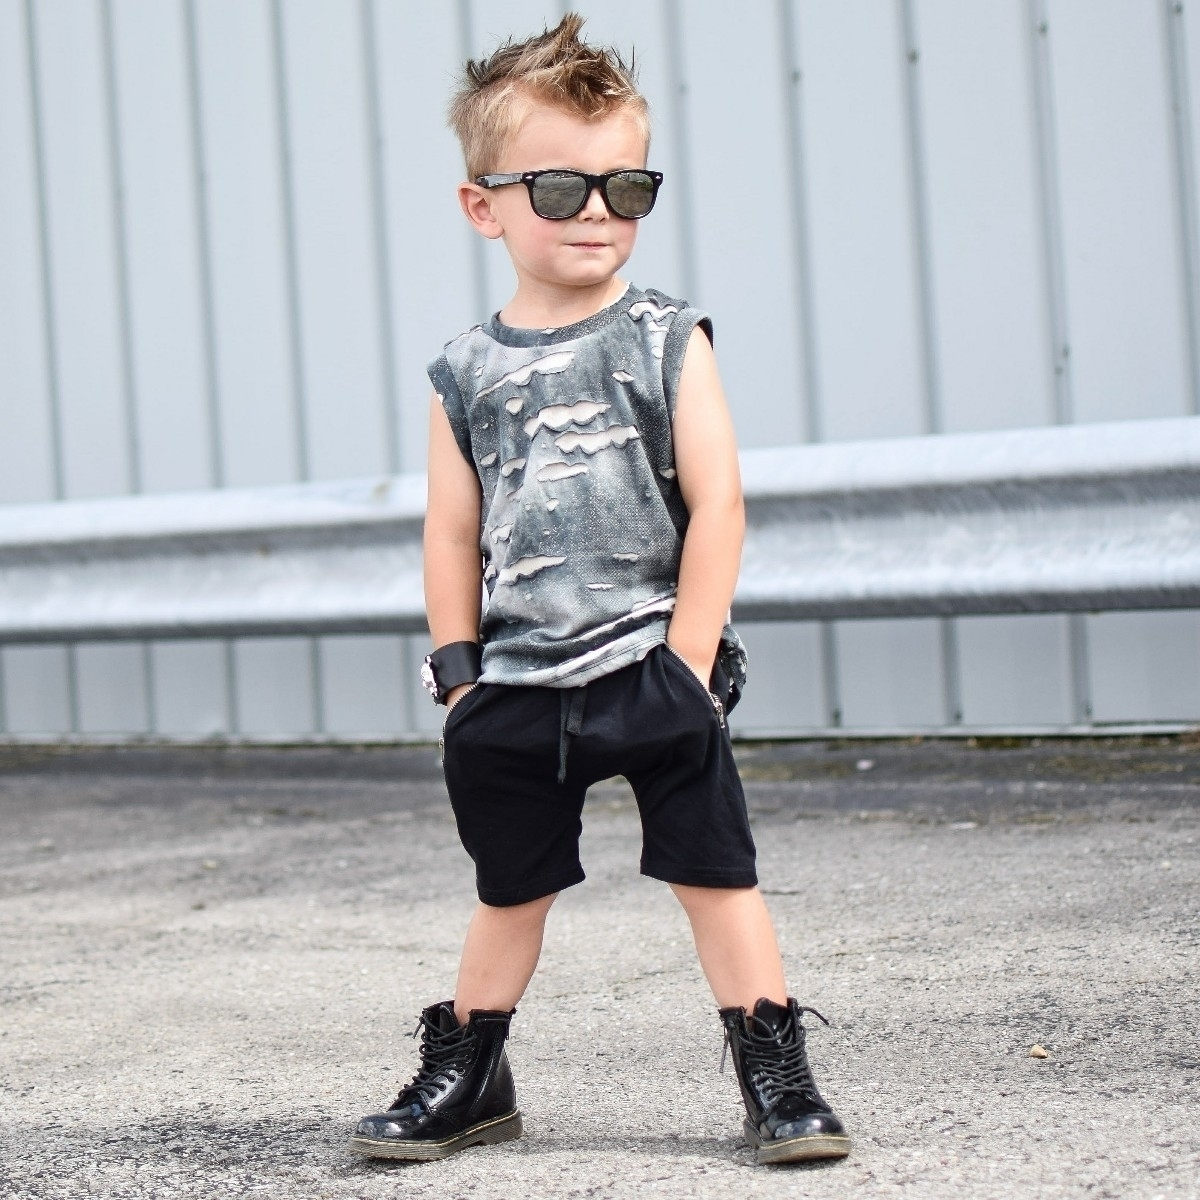 Lookin Rad - kidfashion, kidstyle - action_jaxon14 | ello